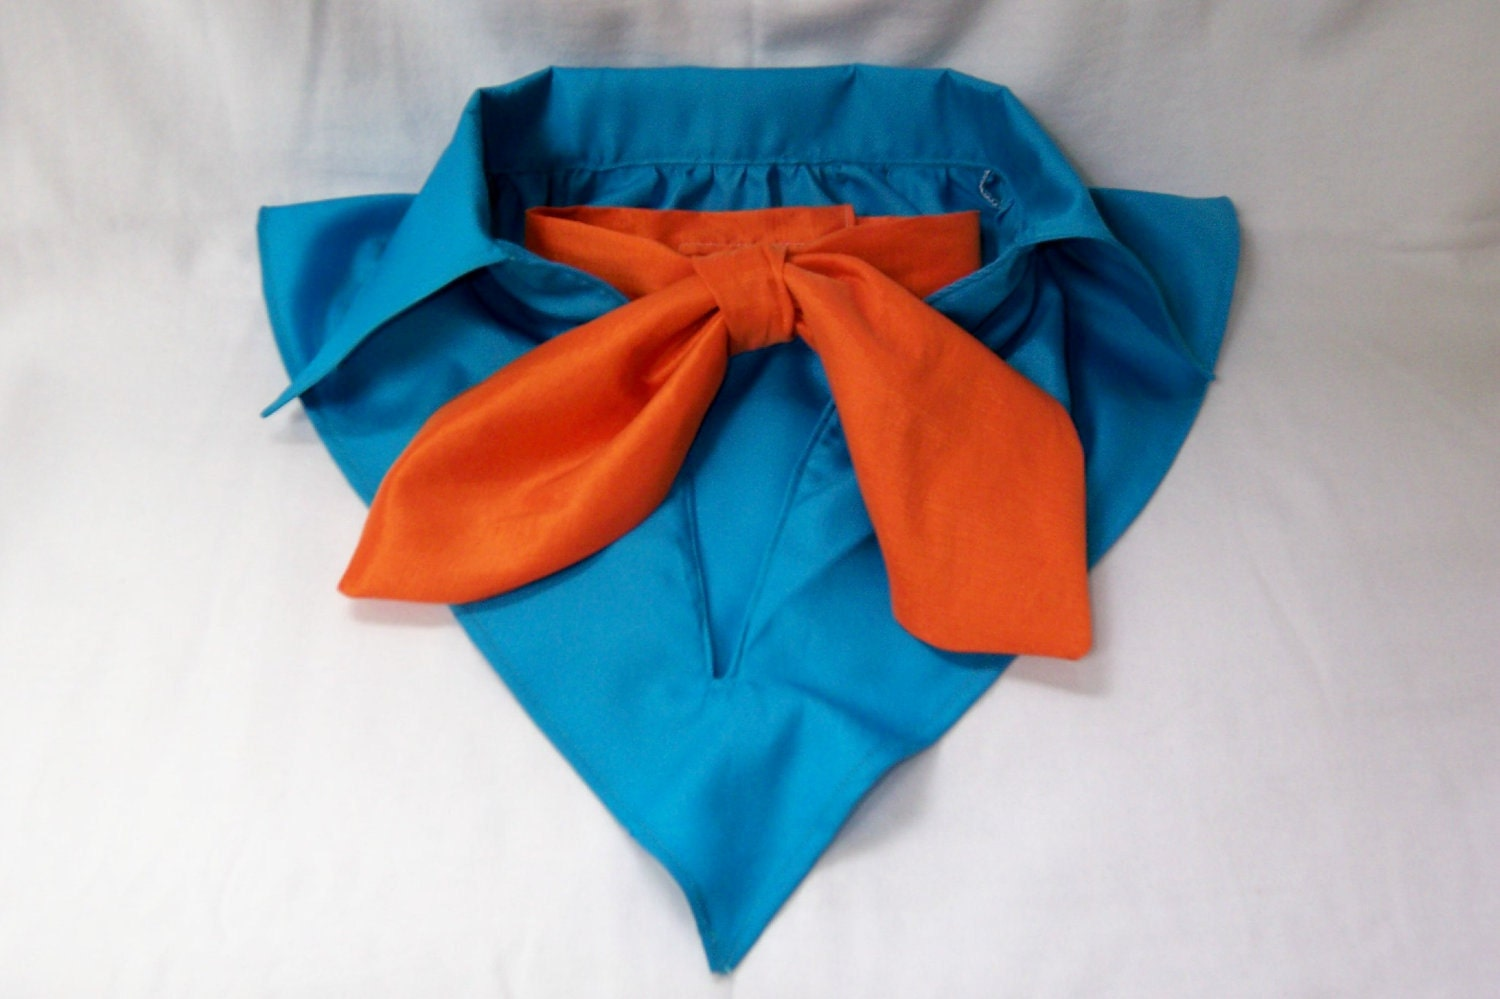 Fred jones adult collar and ascot costume set by correenscdesigns